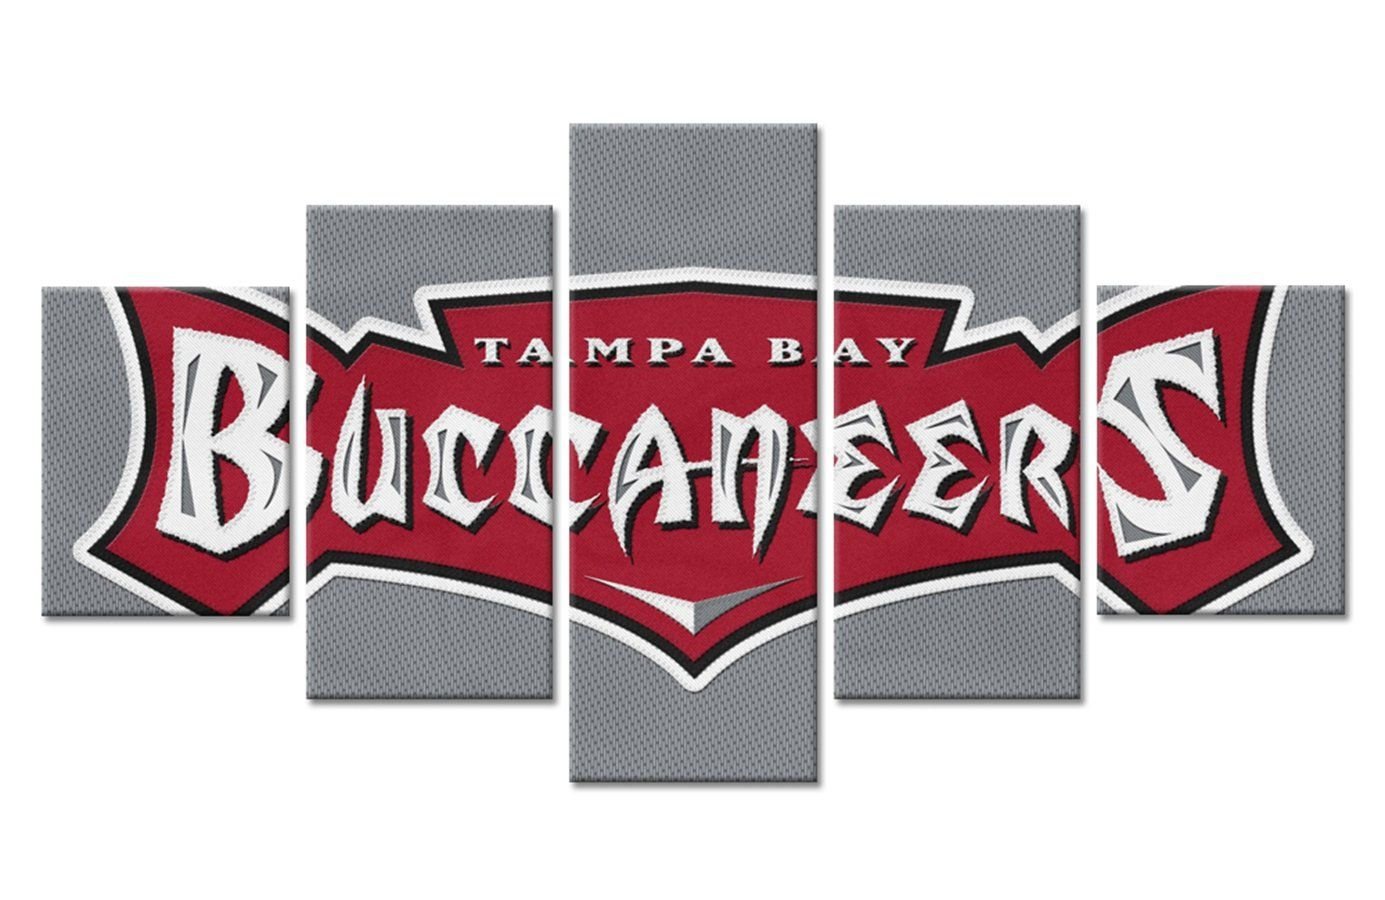 Tampa Bay Bucs Buccaneers Wall Art On Canvas Football Canvas 5 Panel Wall Art Canvas Art